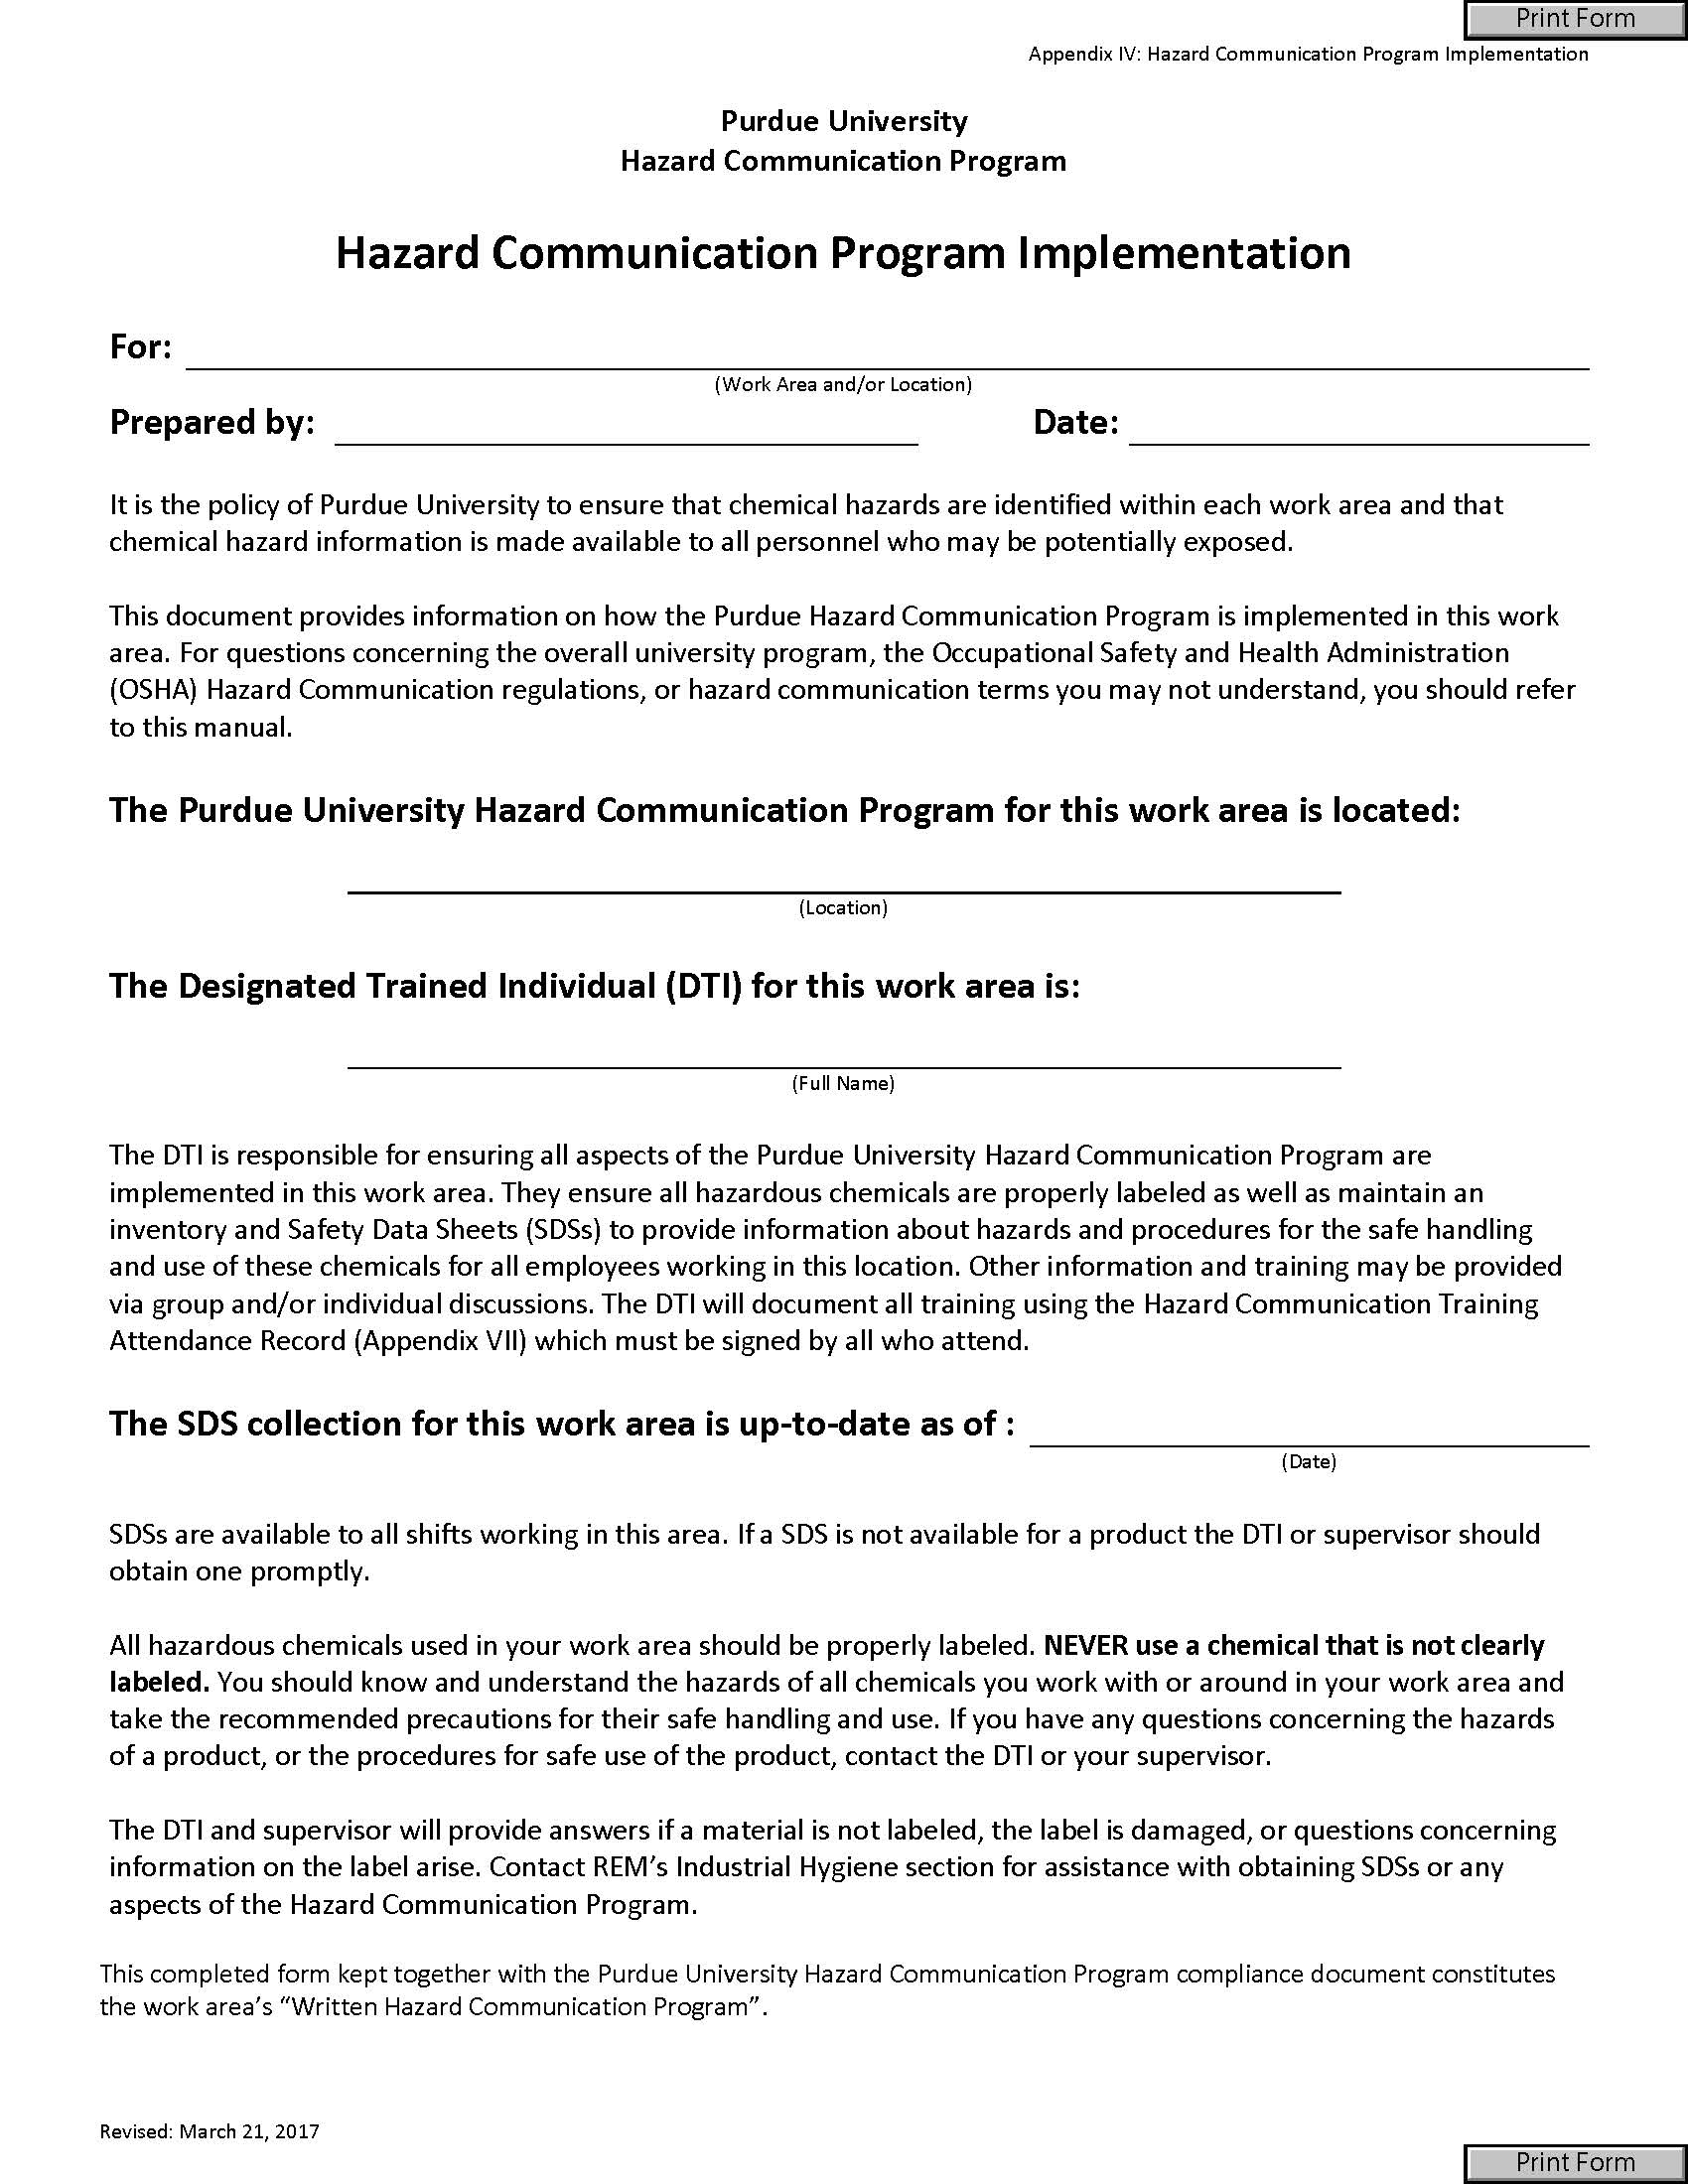 All Forms Radiological Environmental Management Purdue University